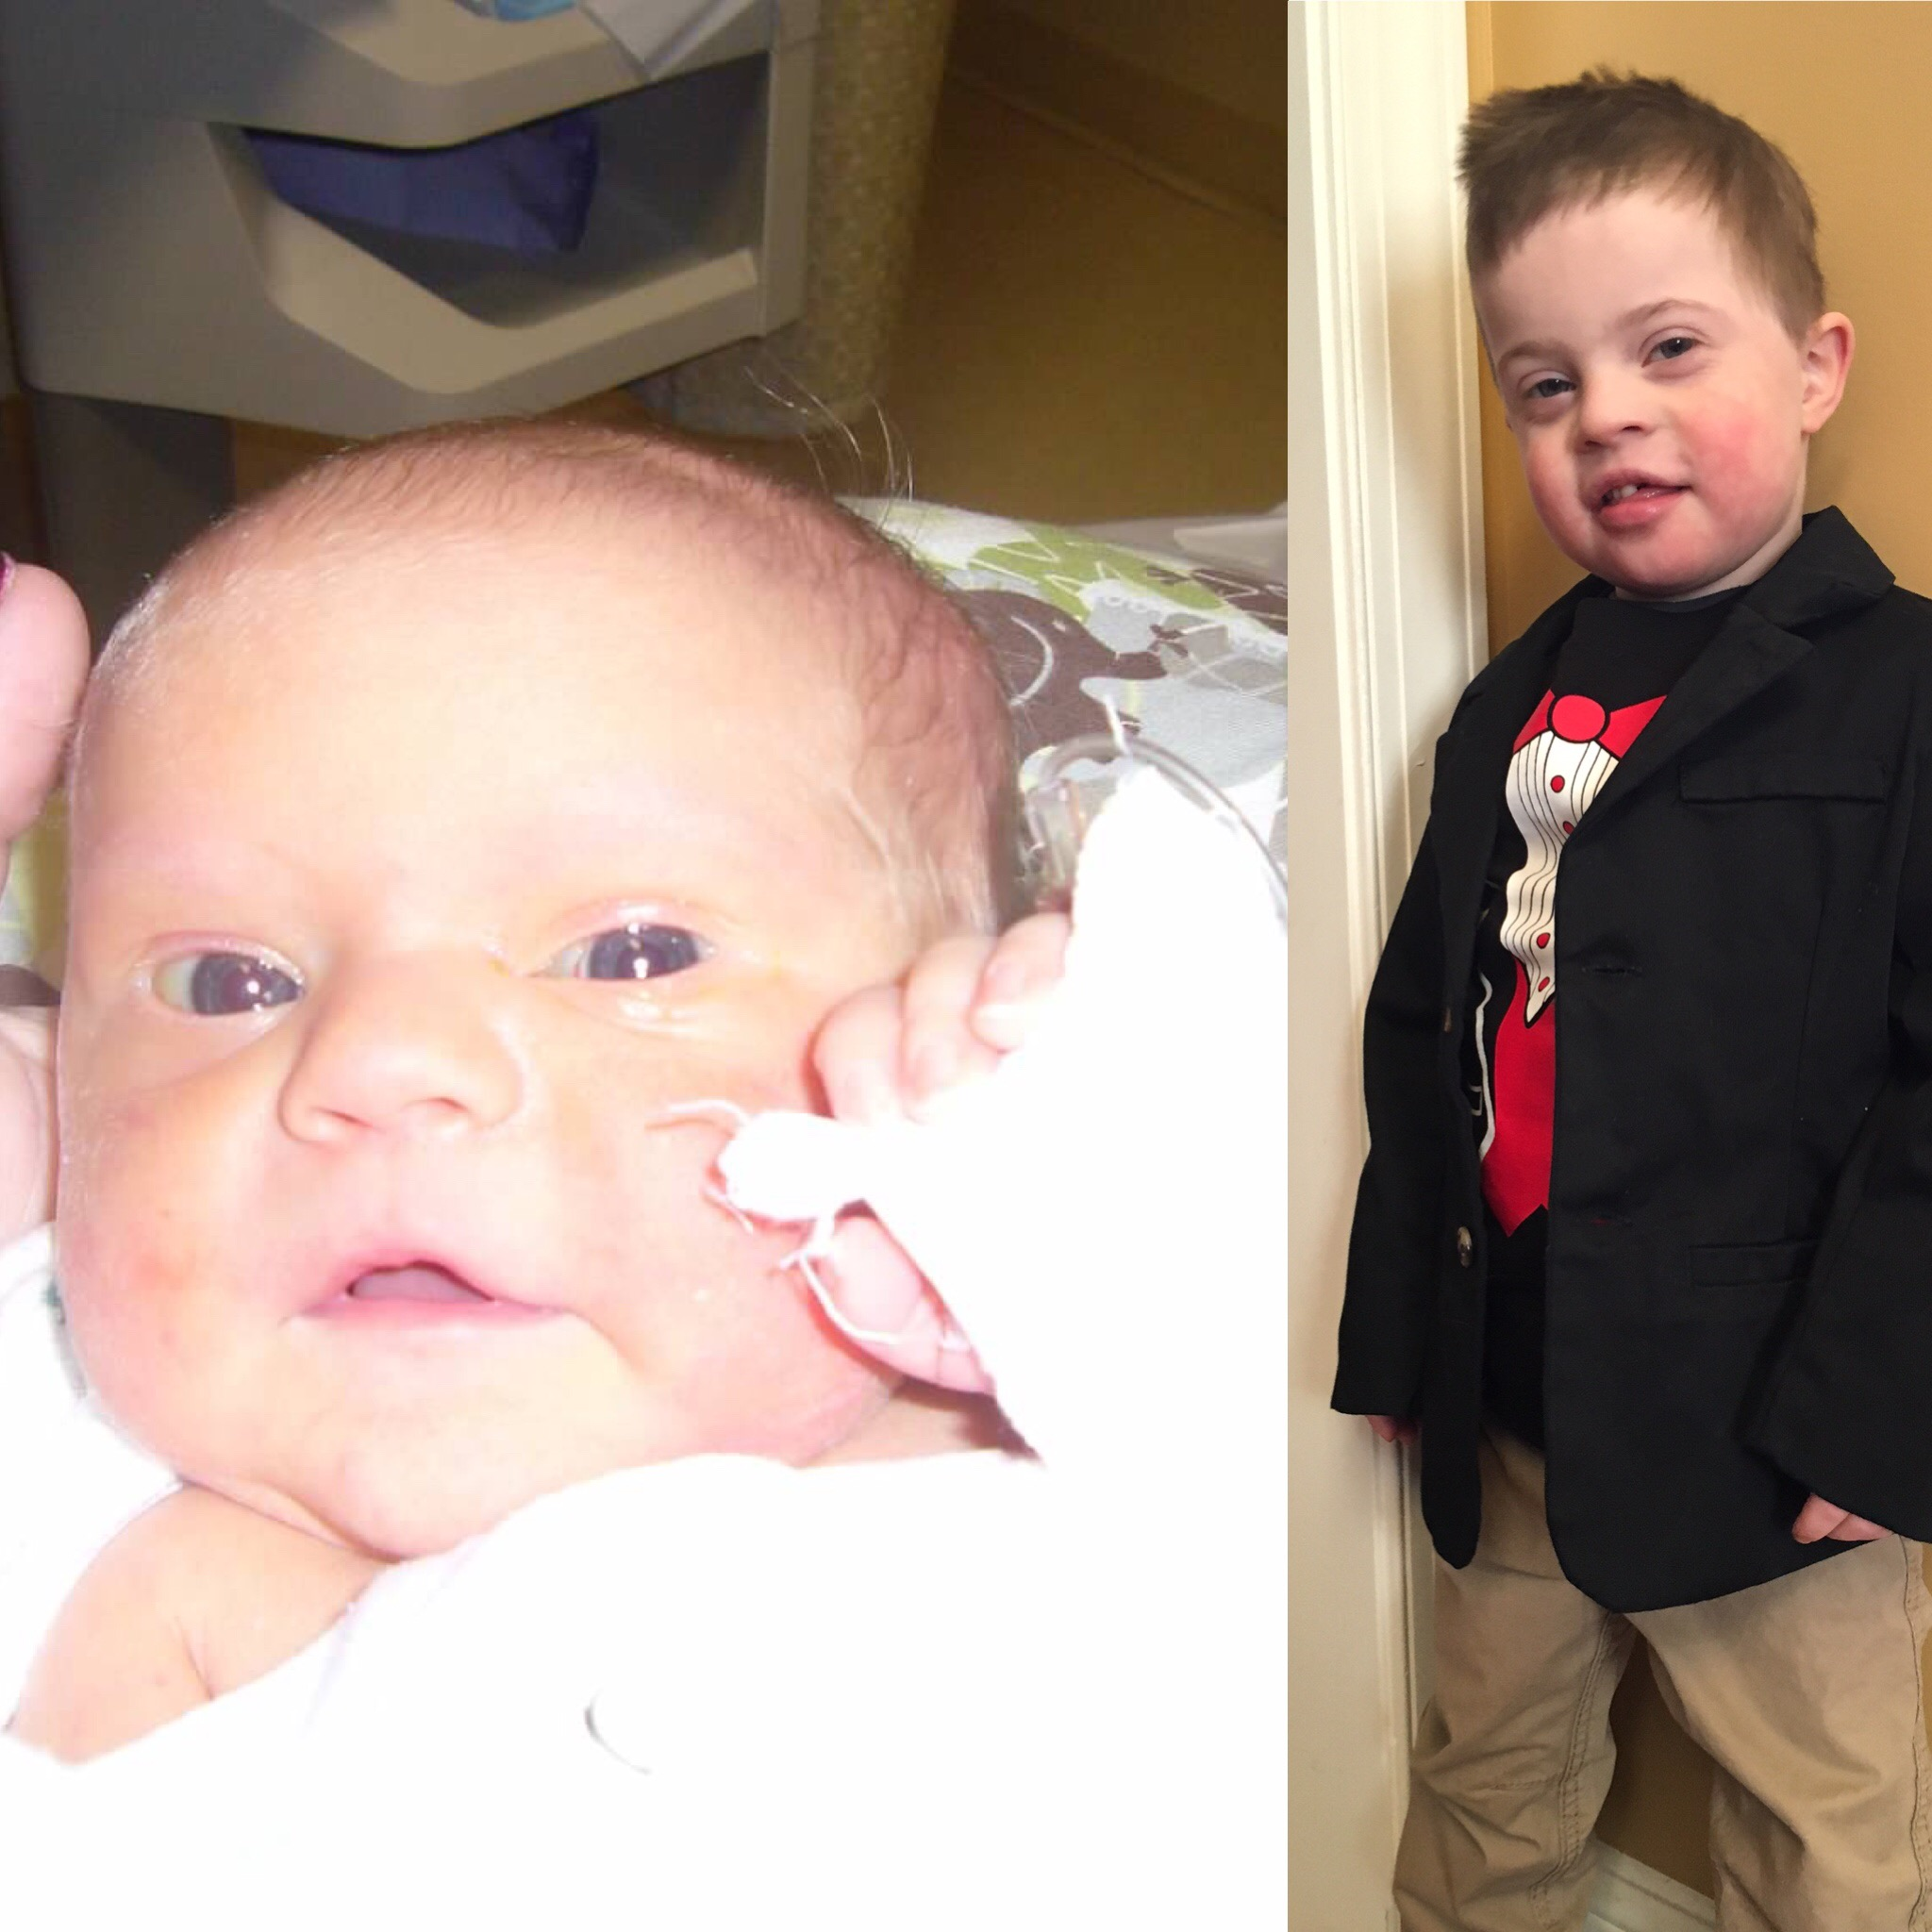 Side by side photos of baby and little boy